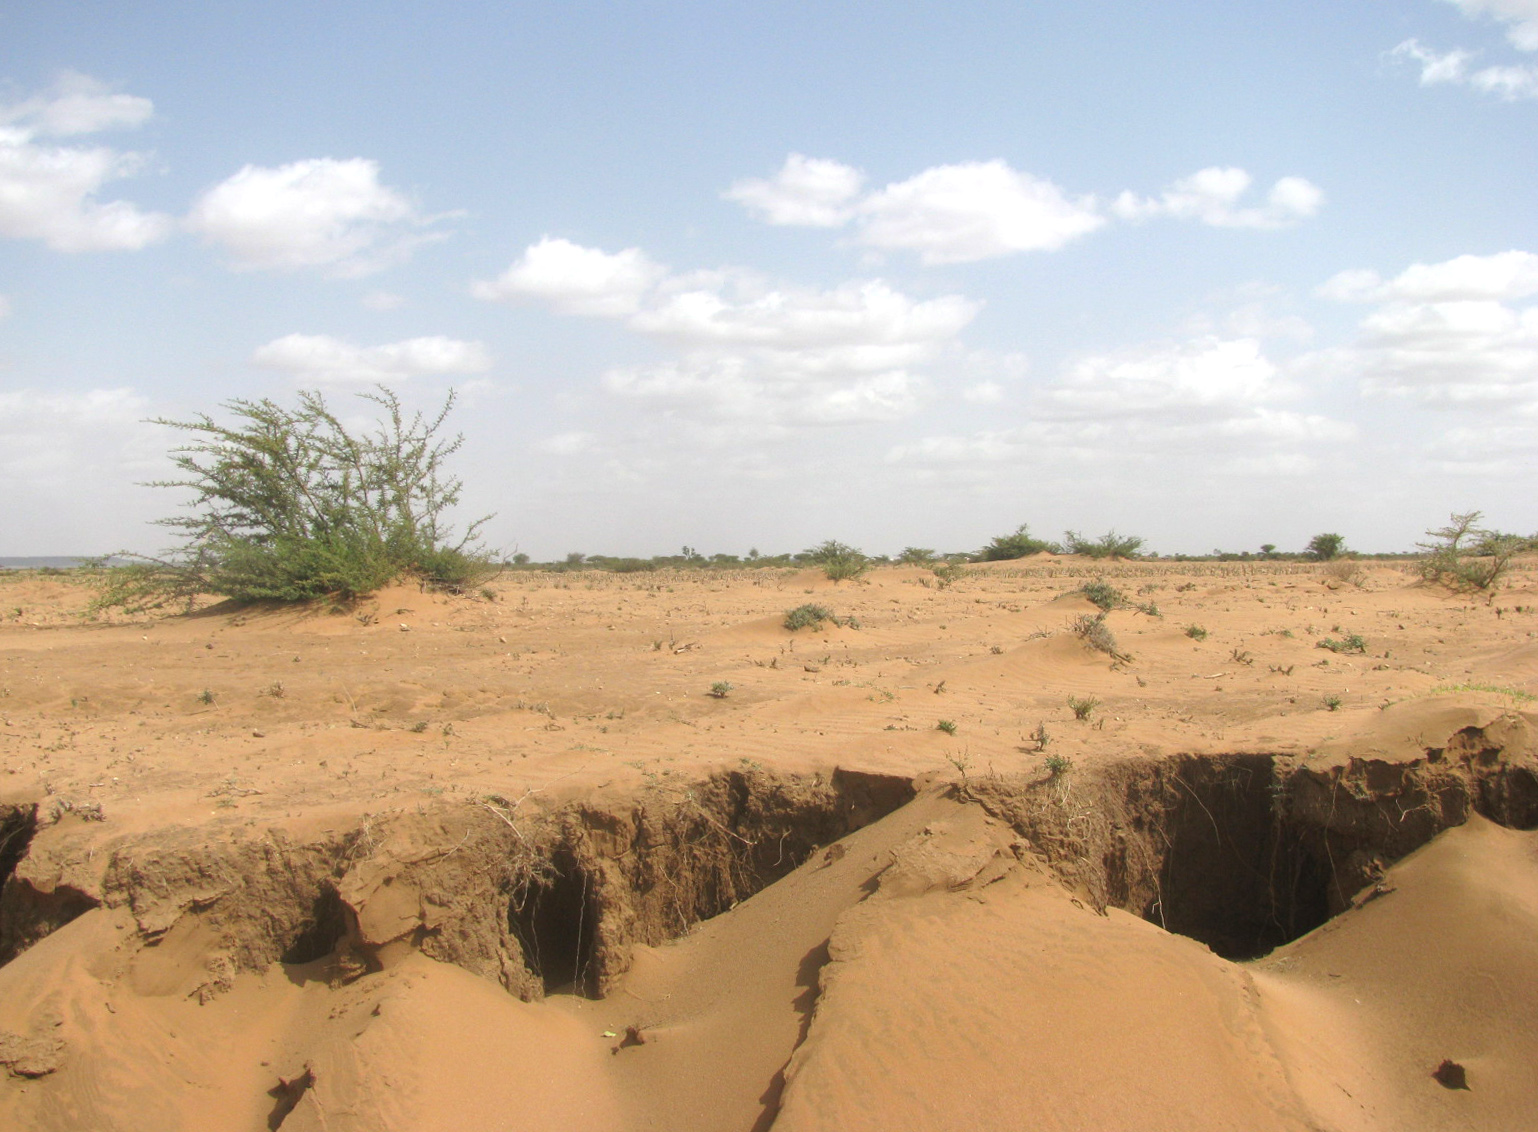 Grasslands that have turned into desert after lacking rain for the last several rainy seasons